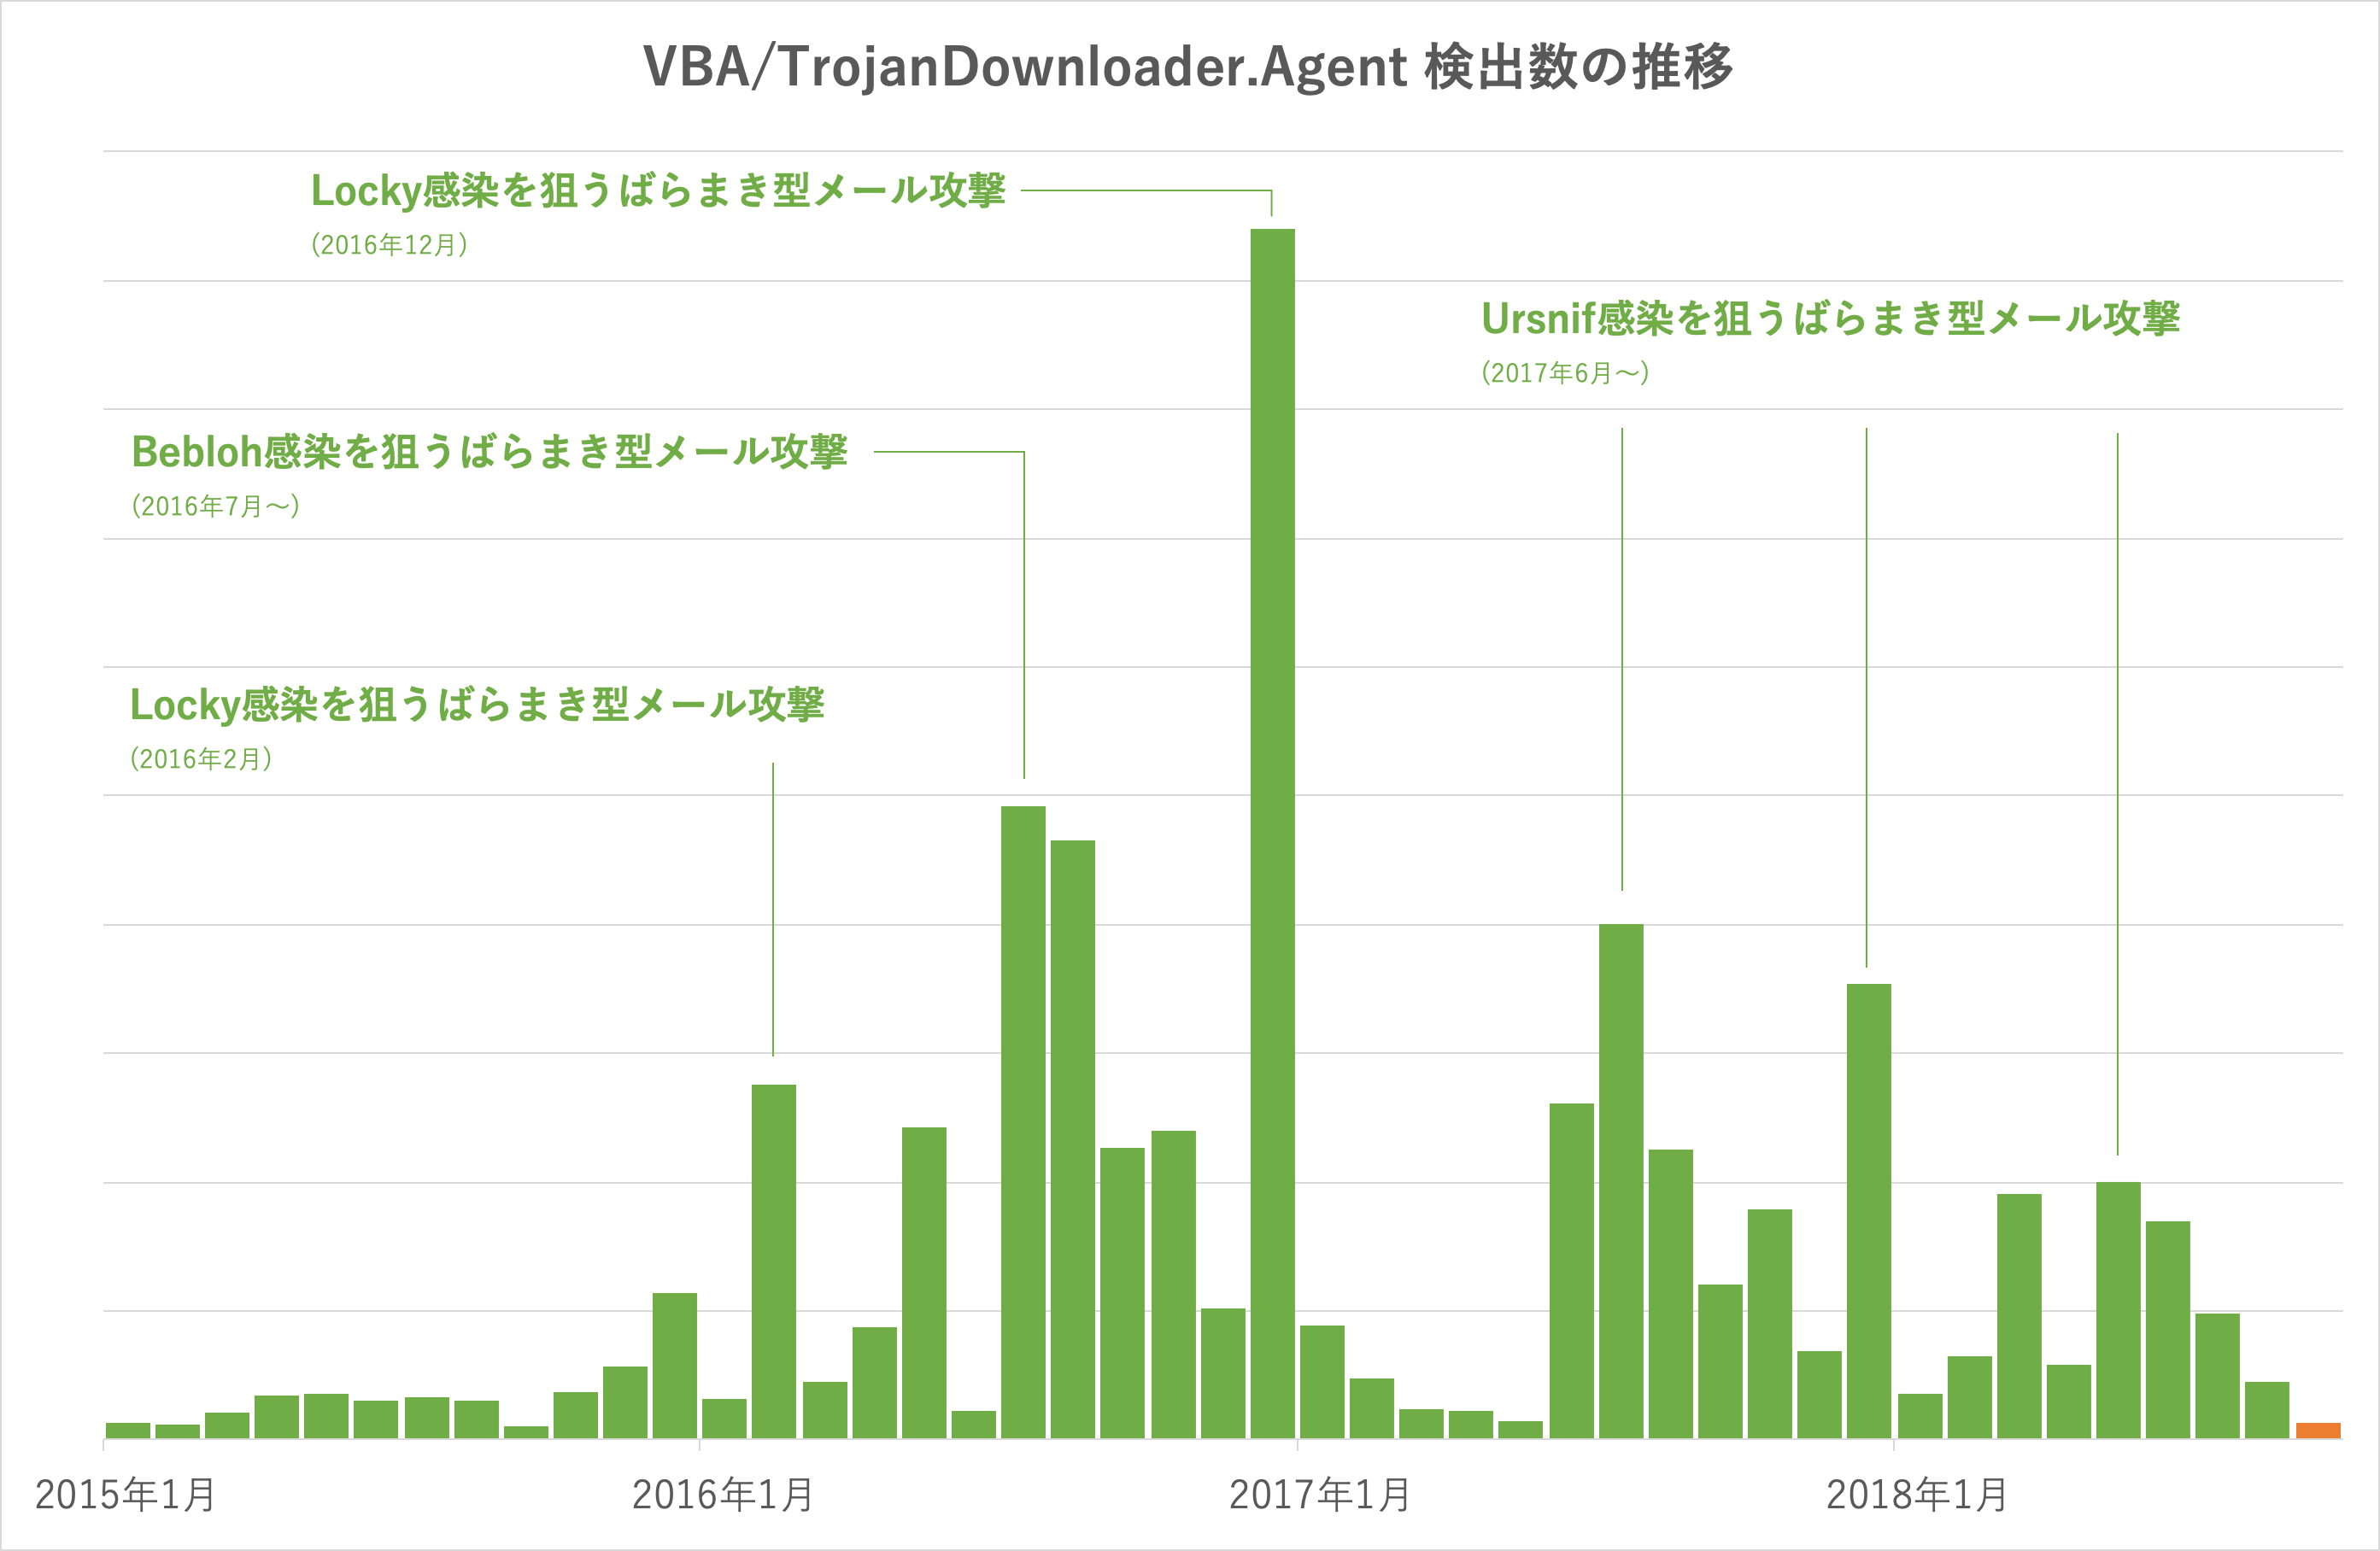 VBA/TrojanDownloader.Agent検出数の推移